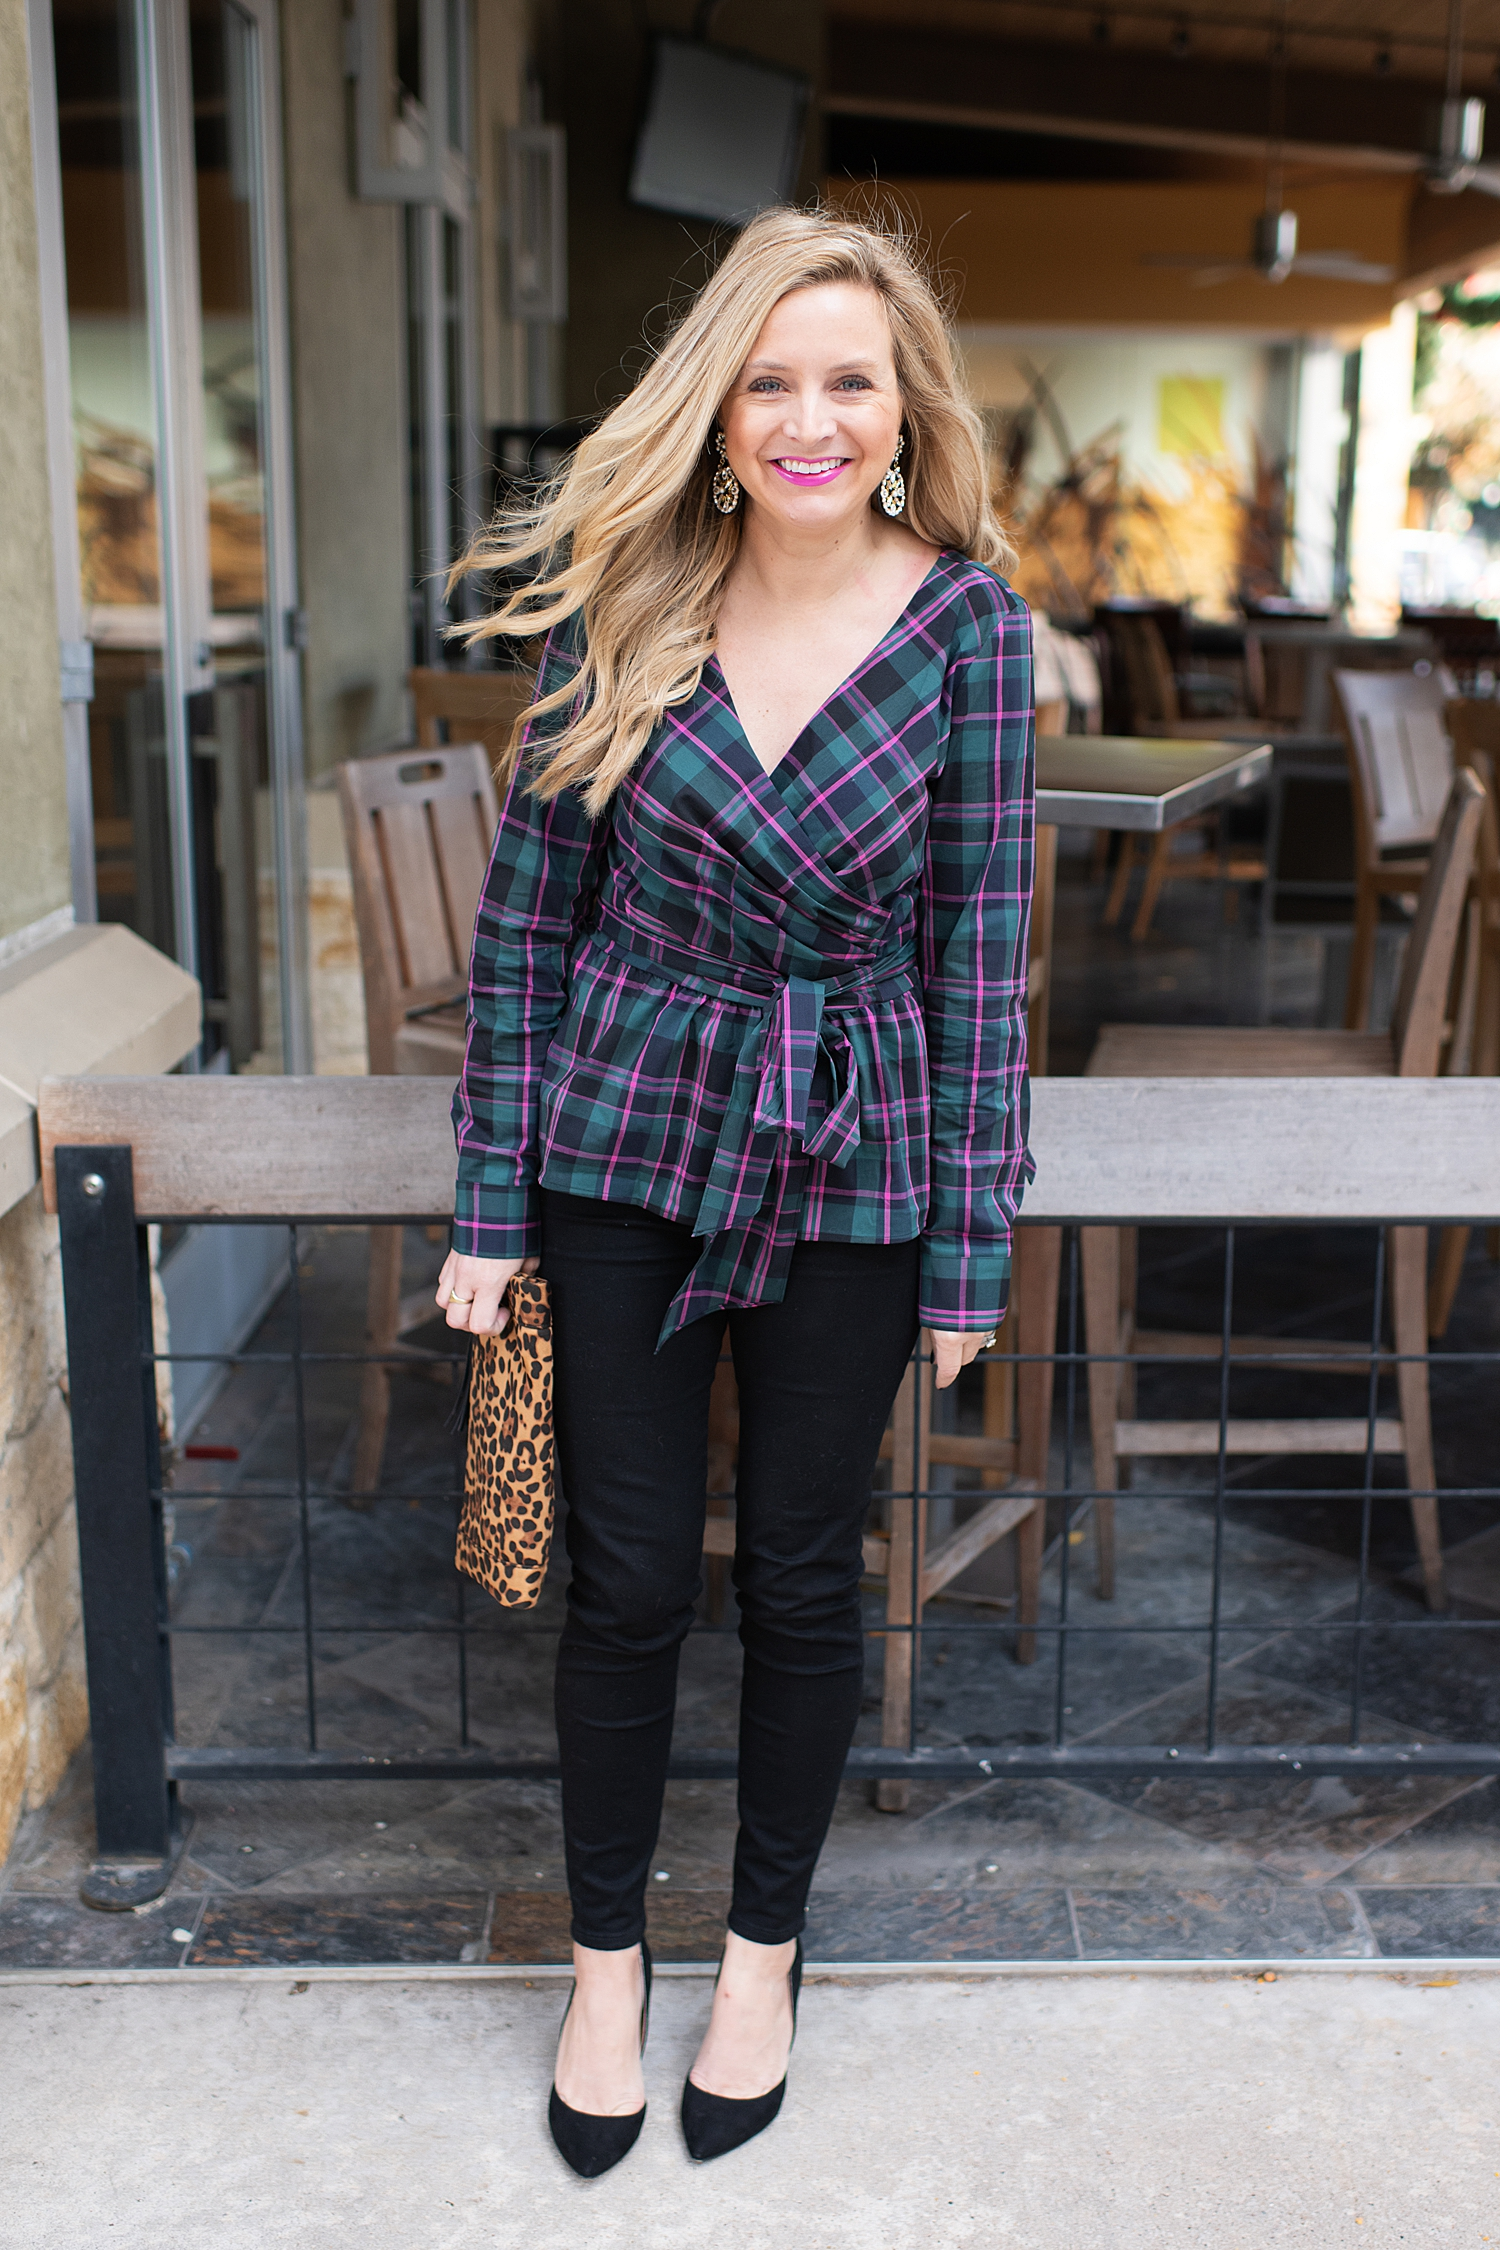 Top Houston fashion blogger, Fancy Ashley, features 7 Holiday Outfits perfect for the season: image of a woman wearing Plaid wrap top, black ankle skinny jeans, Kate Spade earrings, leopard clutch all available at Nordstrom